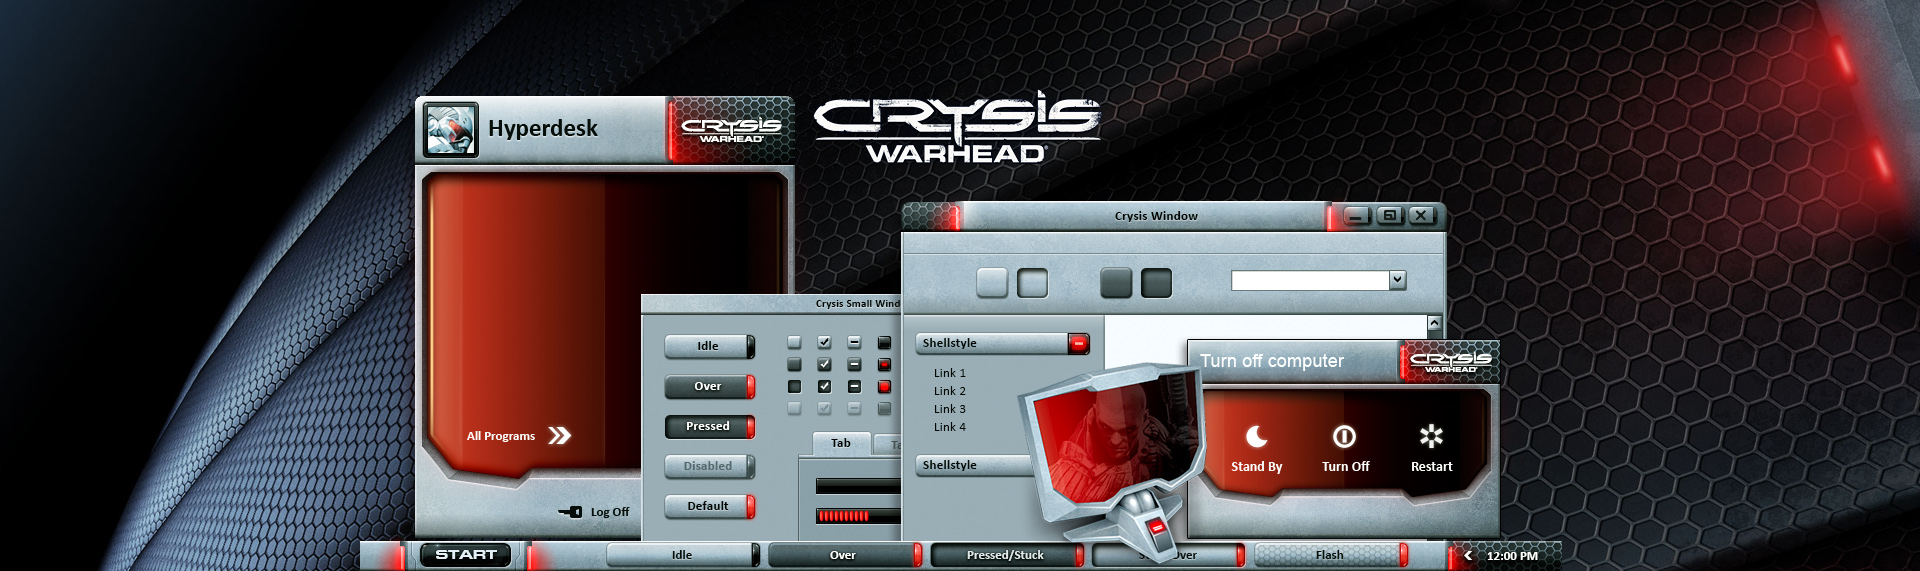 Crysis: Warhead  Client: Electronic Arts + NVIDIA + Ultra PC  Powered by The Skins Factory's Hyperdesk advanced Windows desktop theming solution, Electronic Arts, NVIDIA, Ultra PC contracted The Skins Factory to design and power the Official Crysis: Warhead Windows XP desktop theme. Features 3 Windows XP themes, 15 icons, a custom, ultra-cool nano suit inspired wallpaper. Unfortunately, this theme is no longer available. Crysis is Copyright 2008. Crytek. All rights reserved.